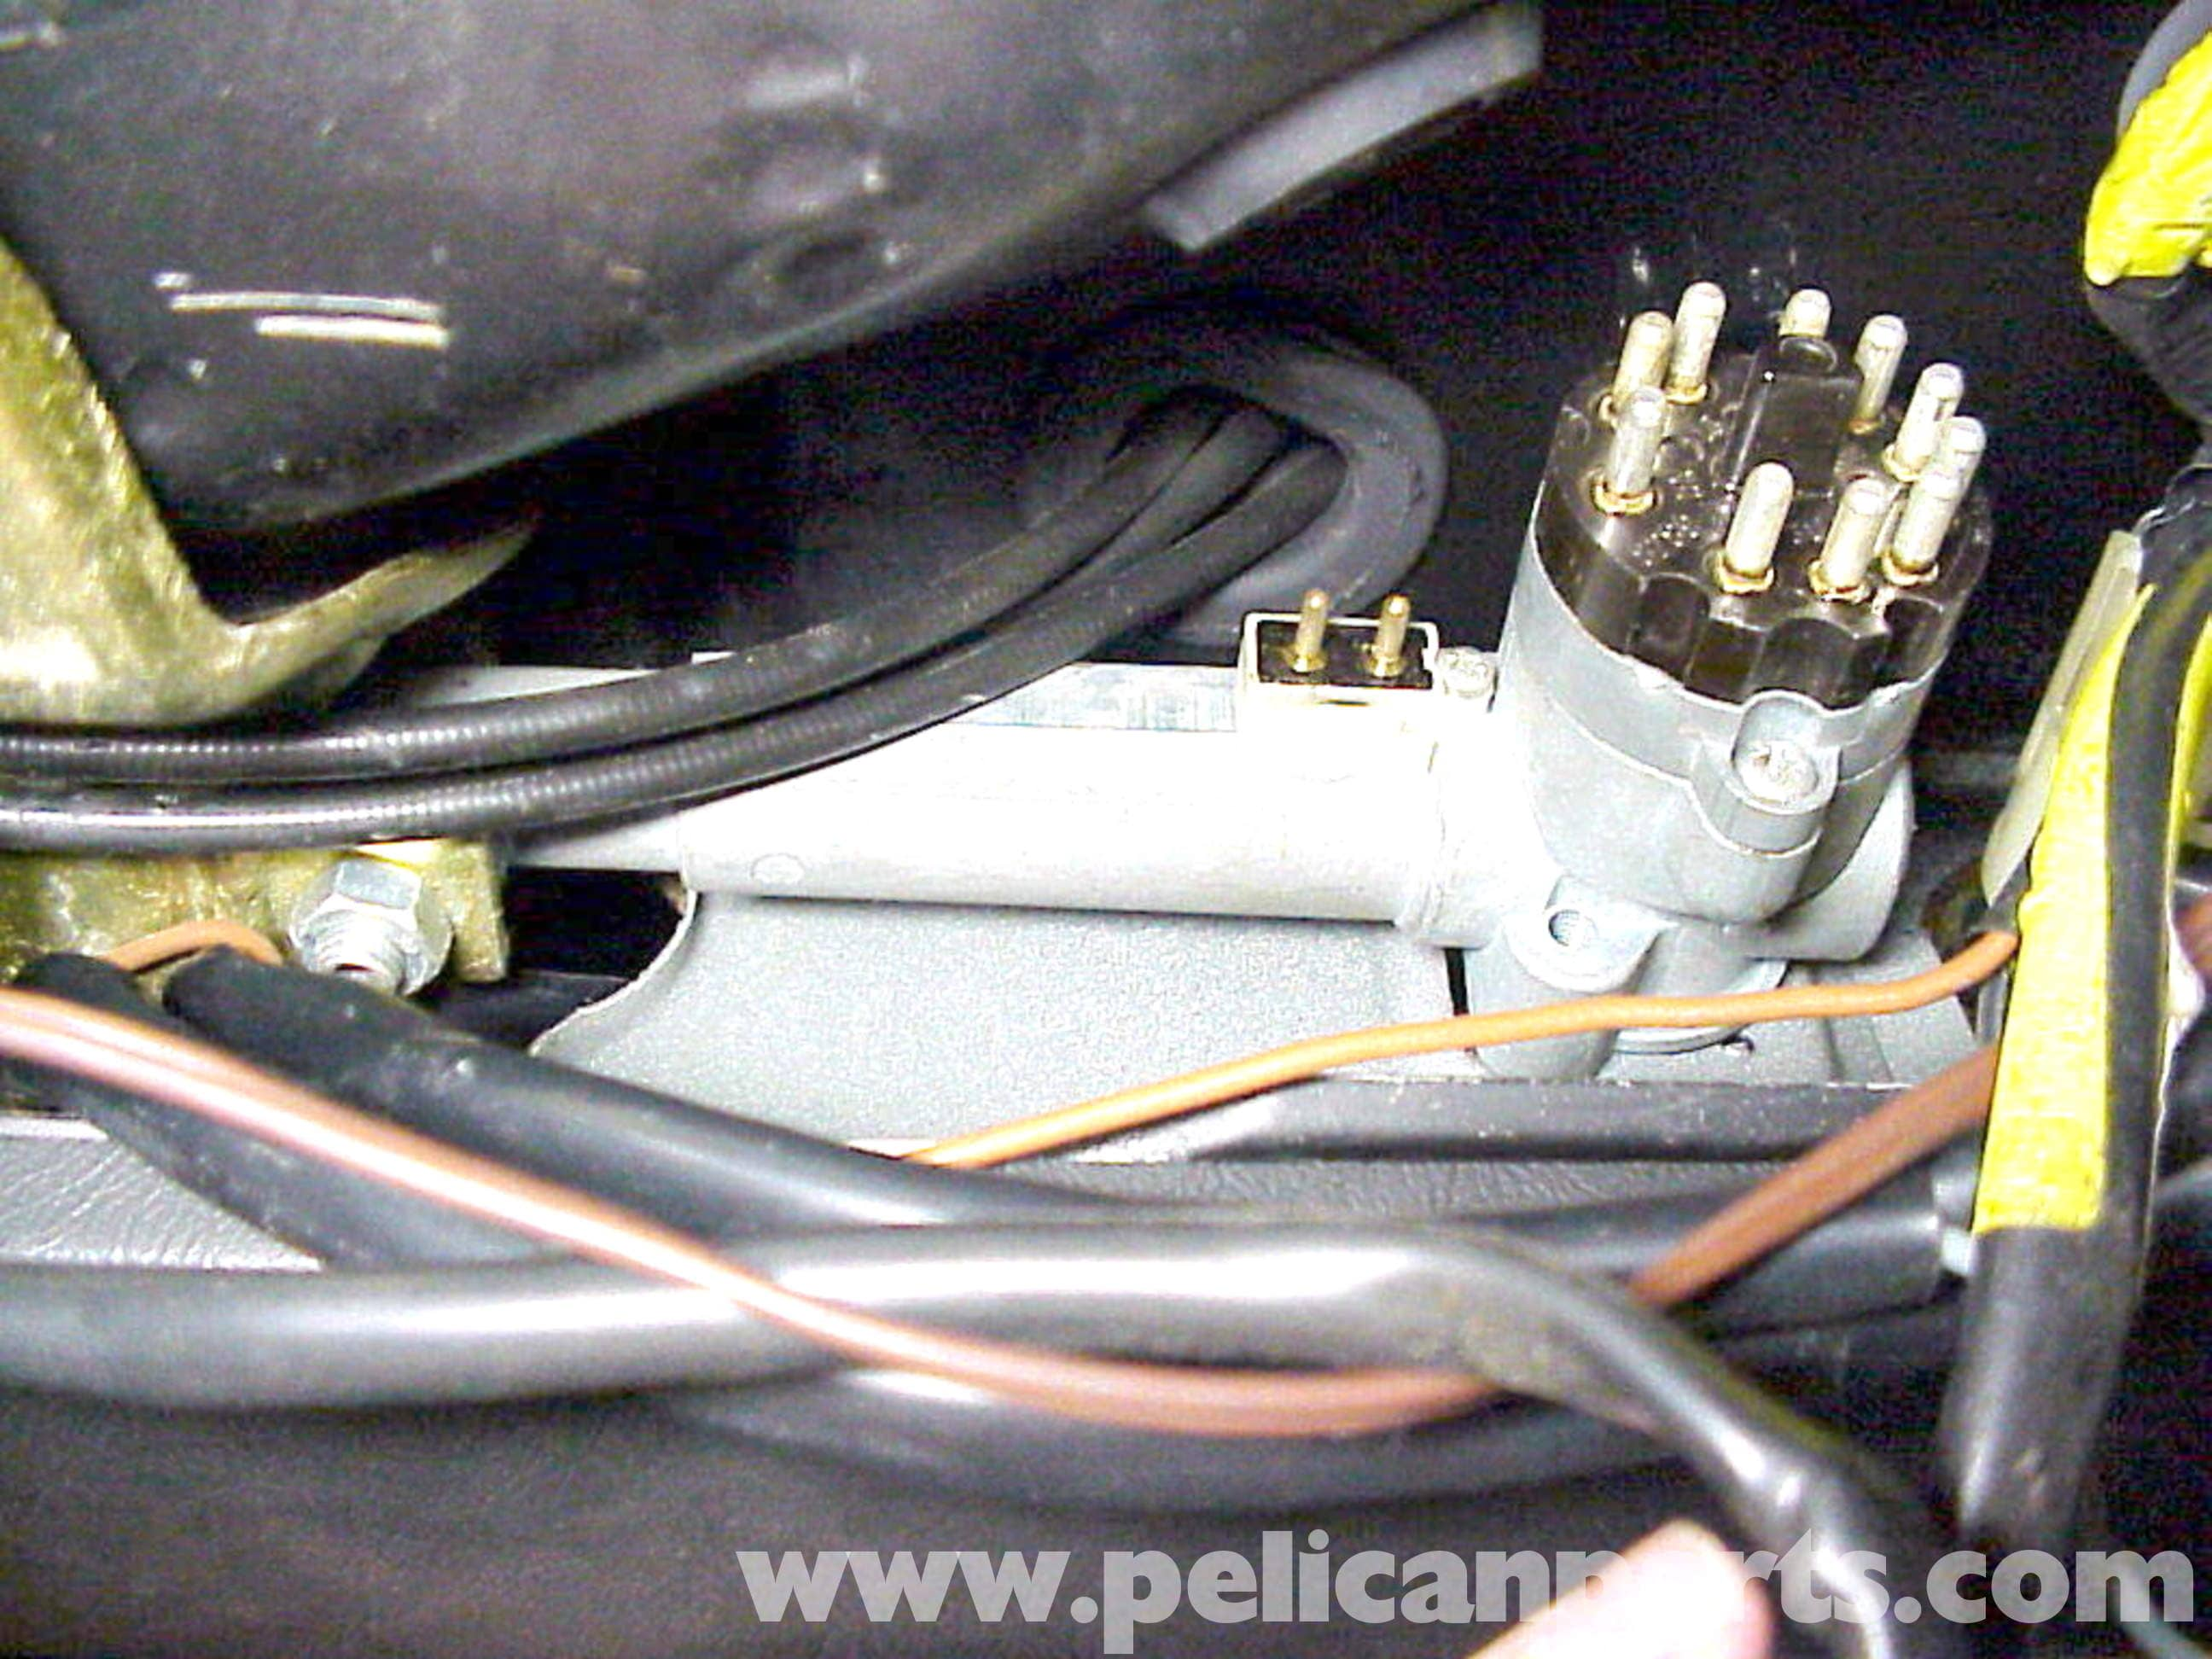 Pic2 porsche 911 ignition switch replacement 911 (1965 89) 930 1980 porsche 911 wiring diagram at edmiracle.co